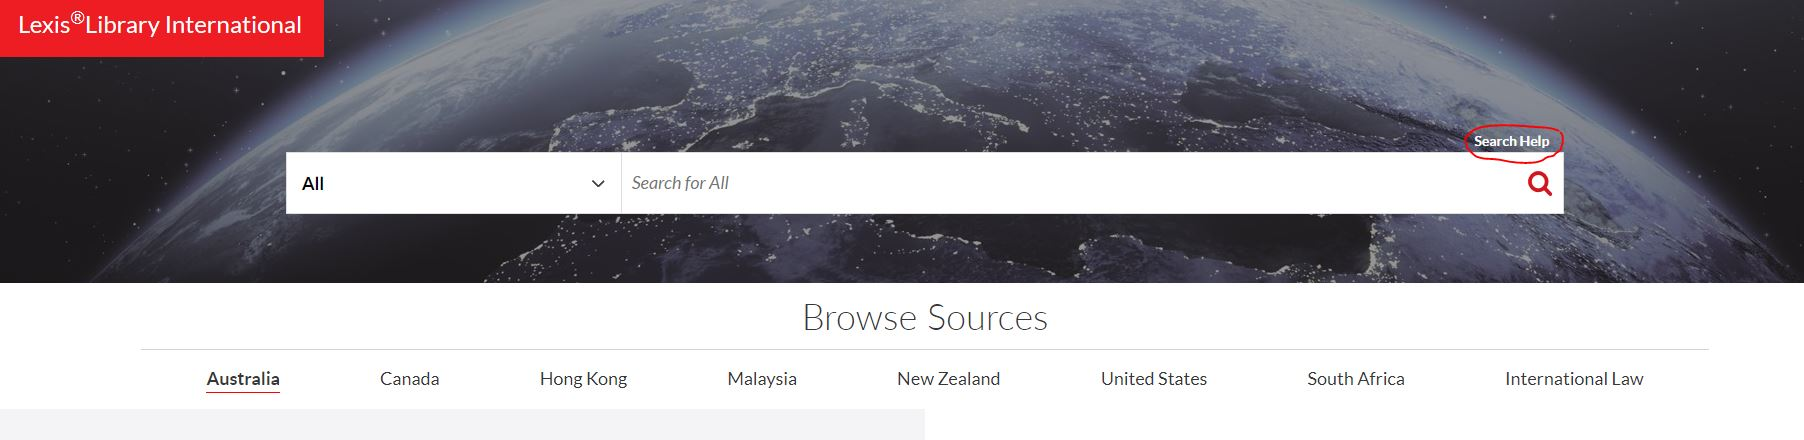 LexisLibrary International - new search bar